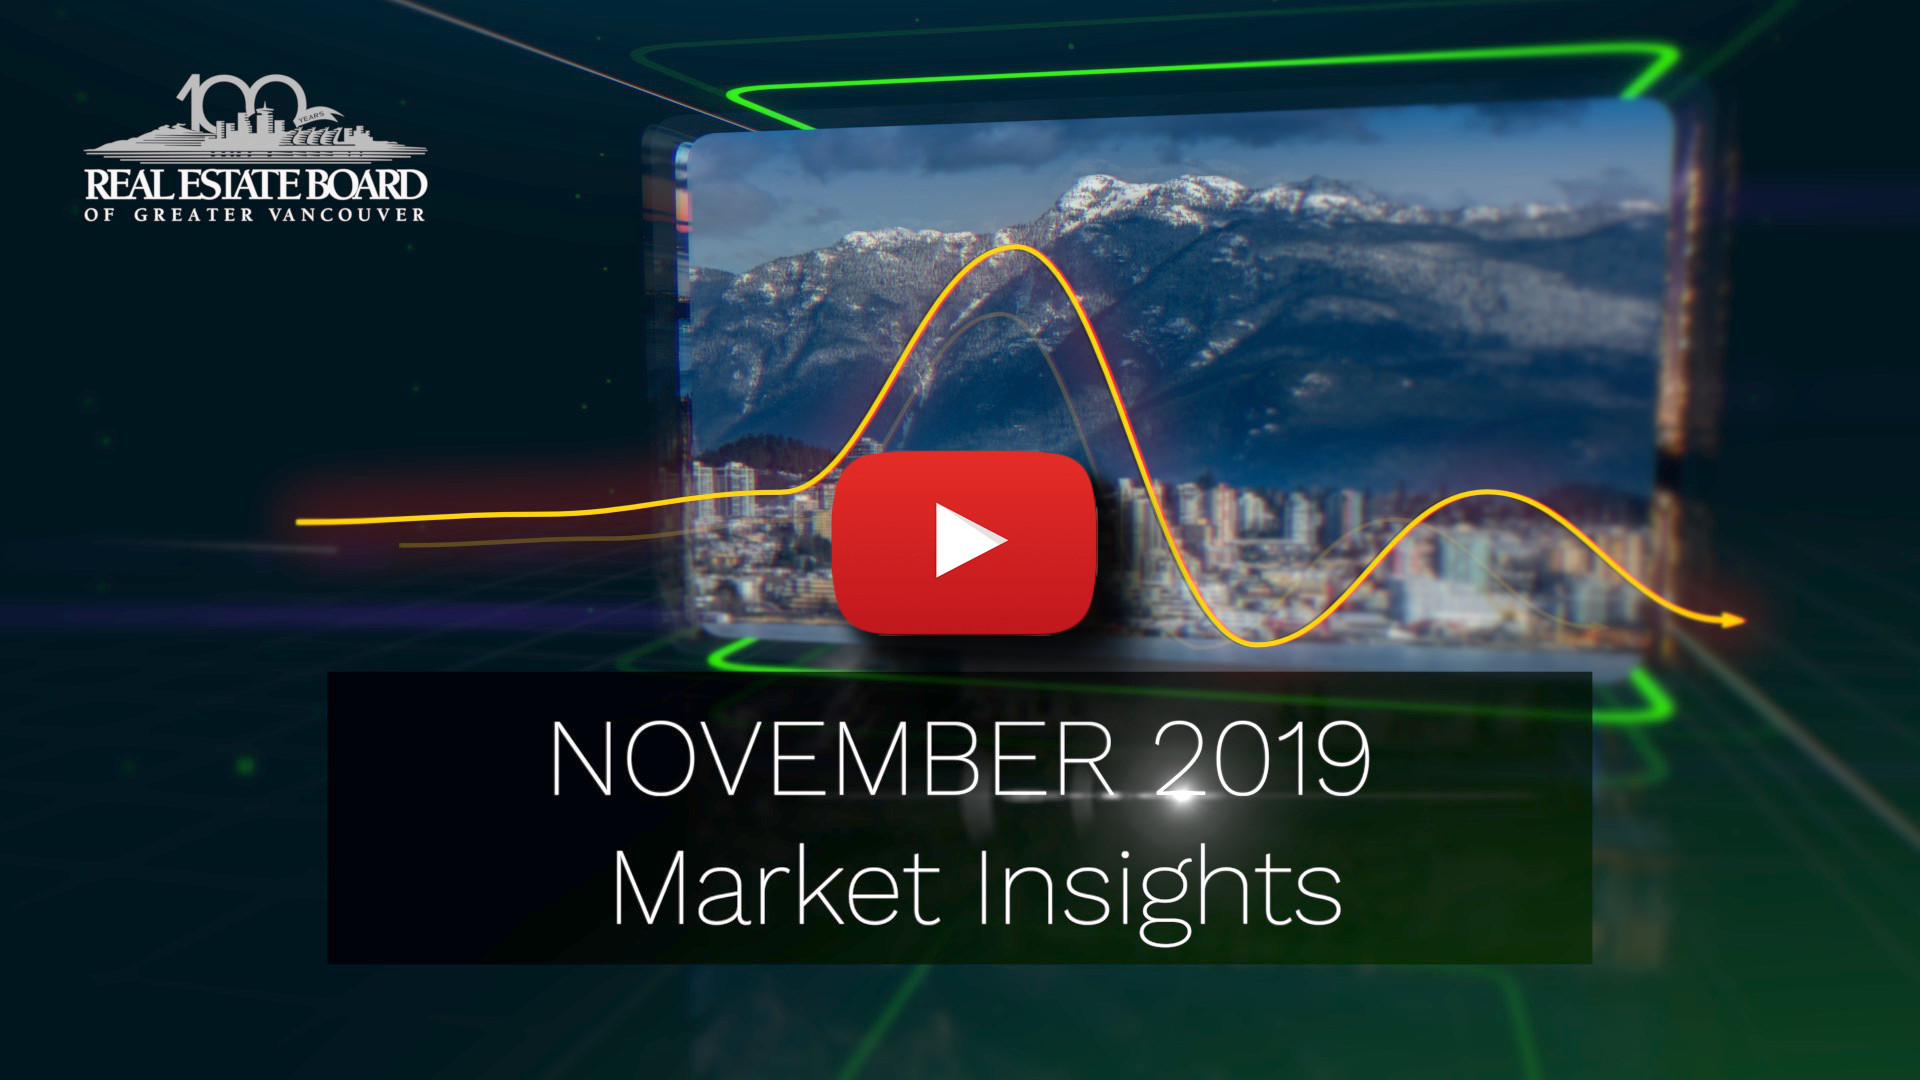 November 2019 Market Insights